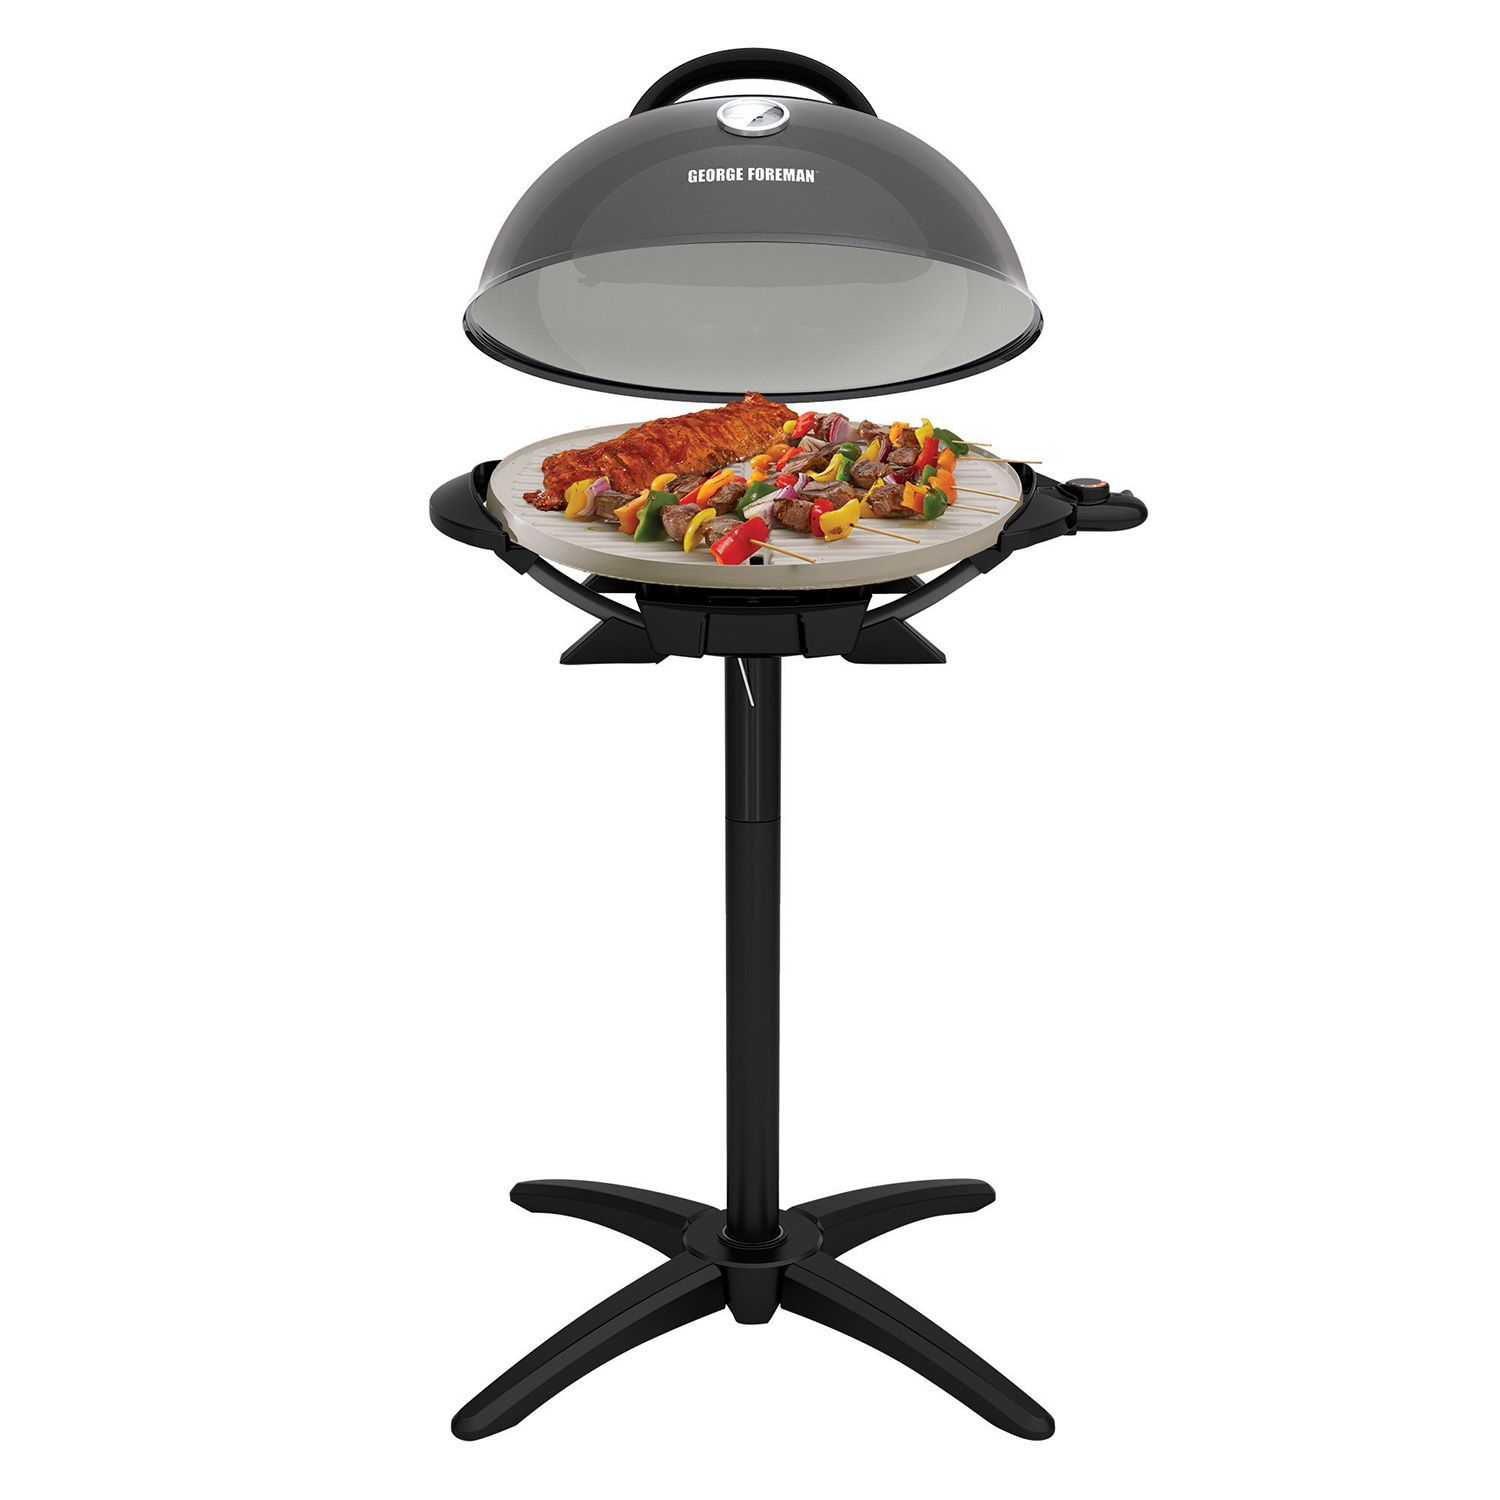 Outdoor Grill George Foreman Indoor Outdoor Electric Grill